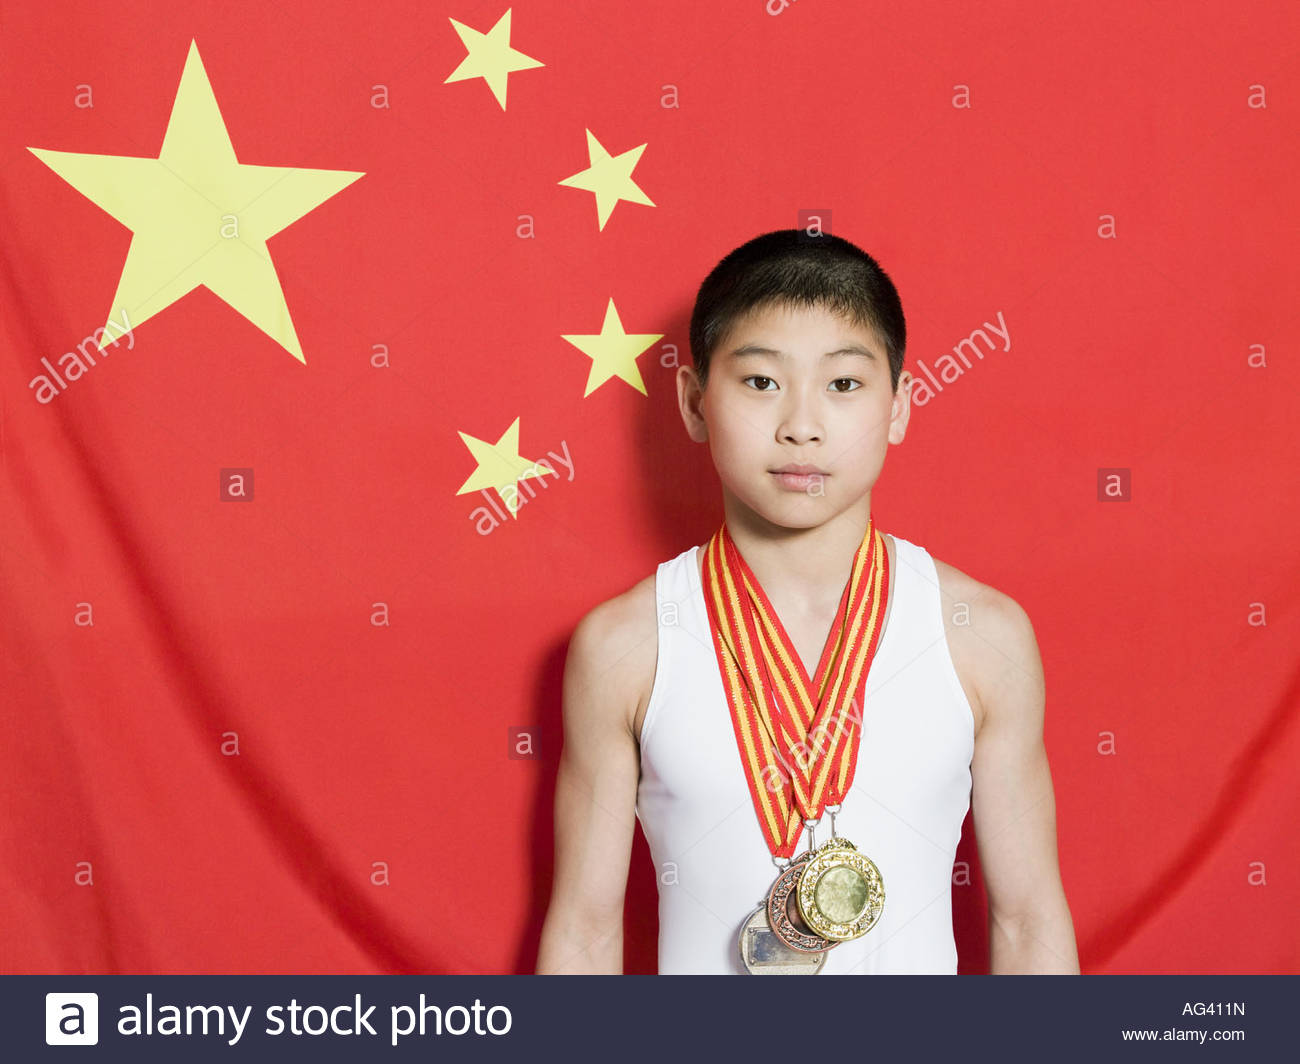 Boy with chinese flag and medals - Stock Image